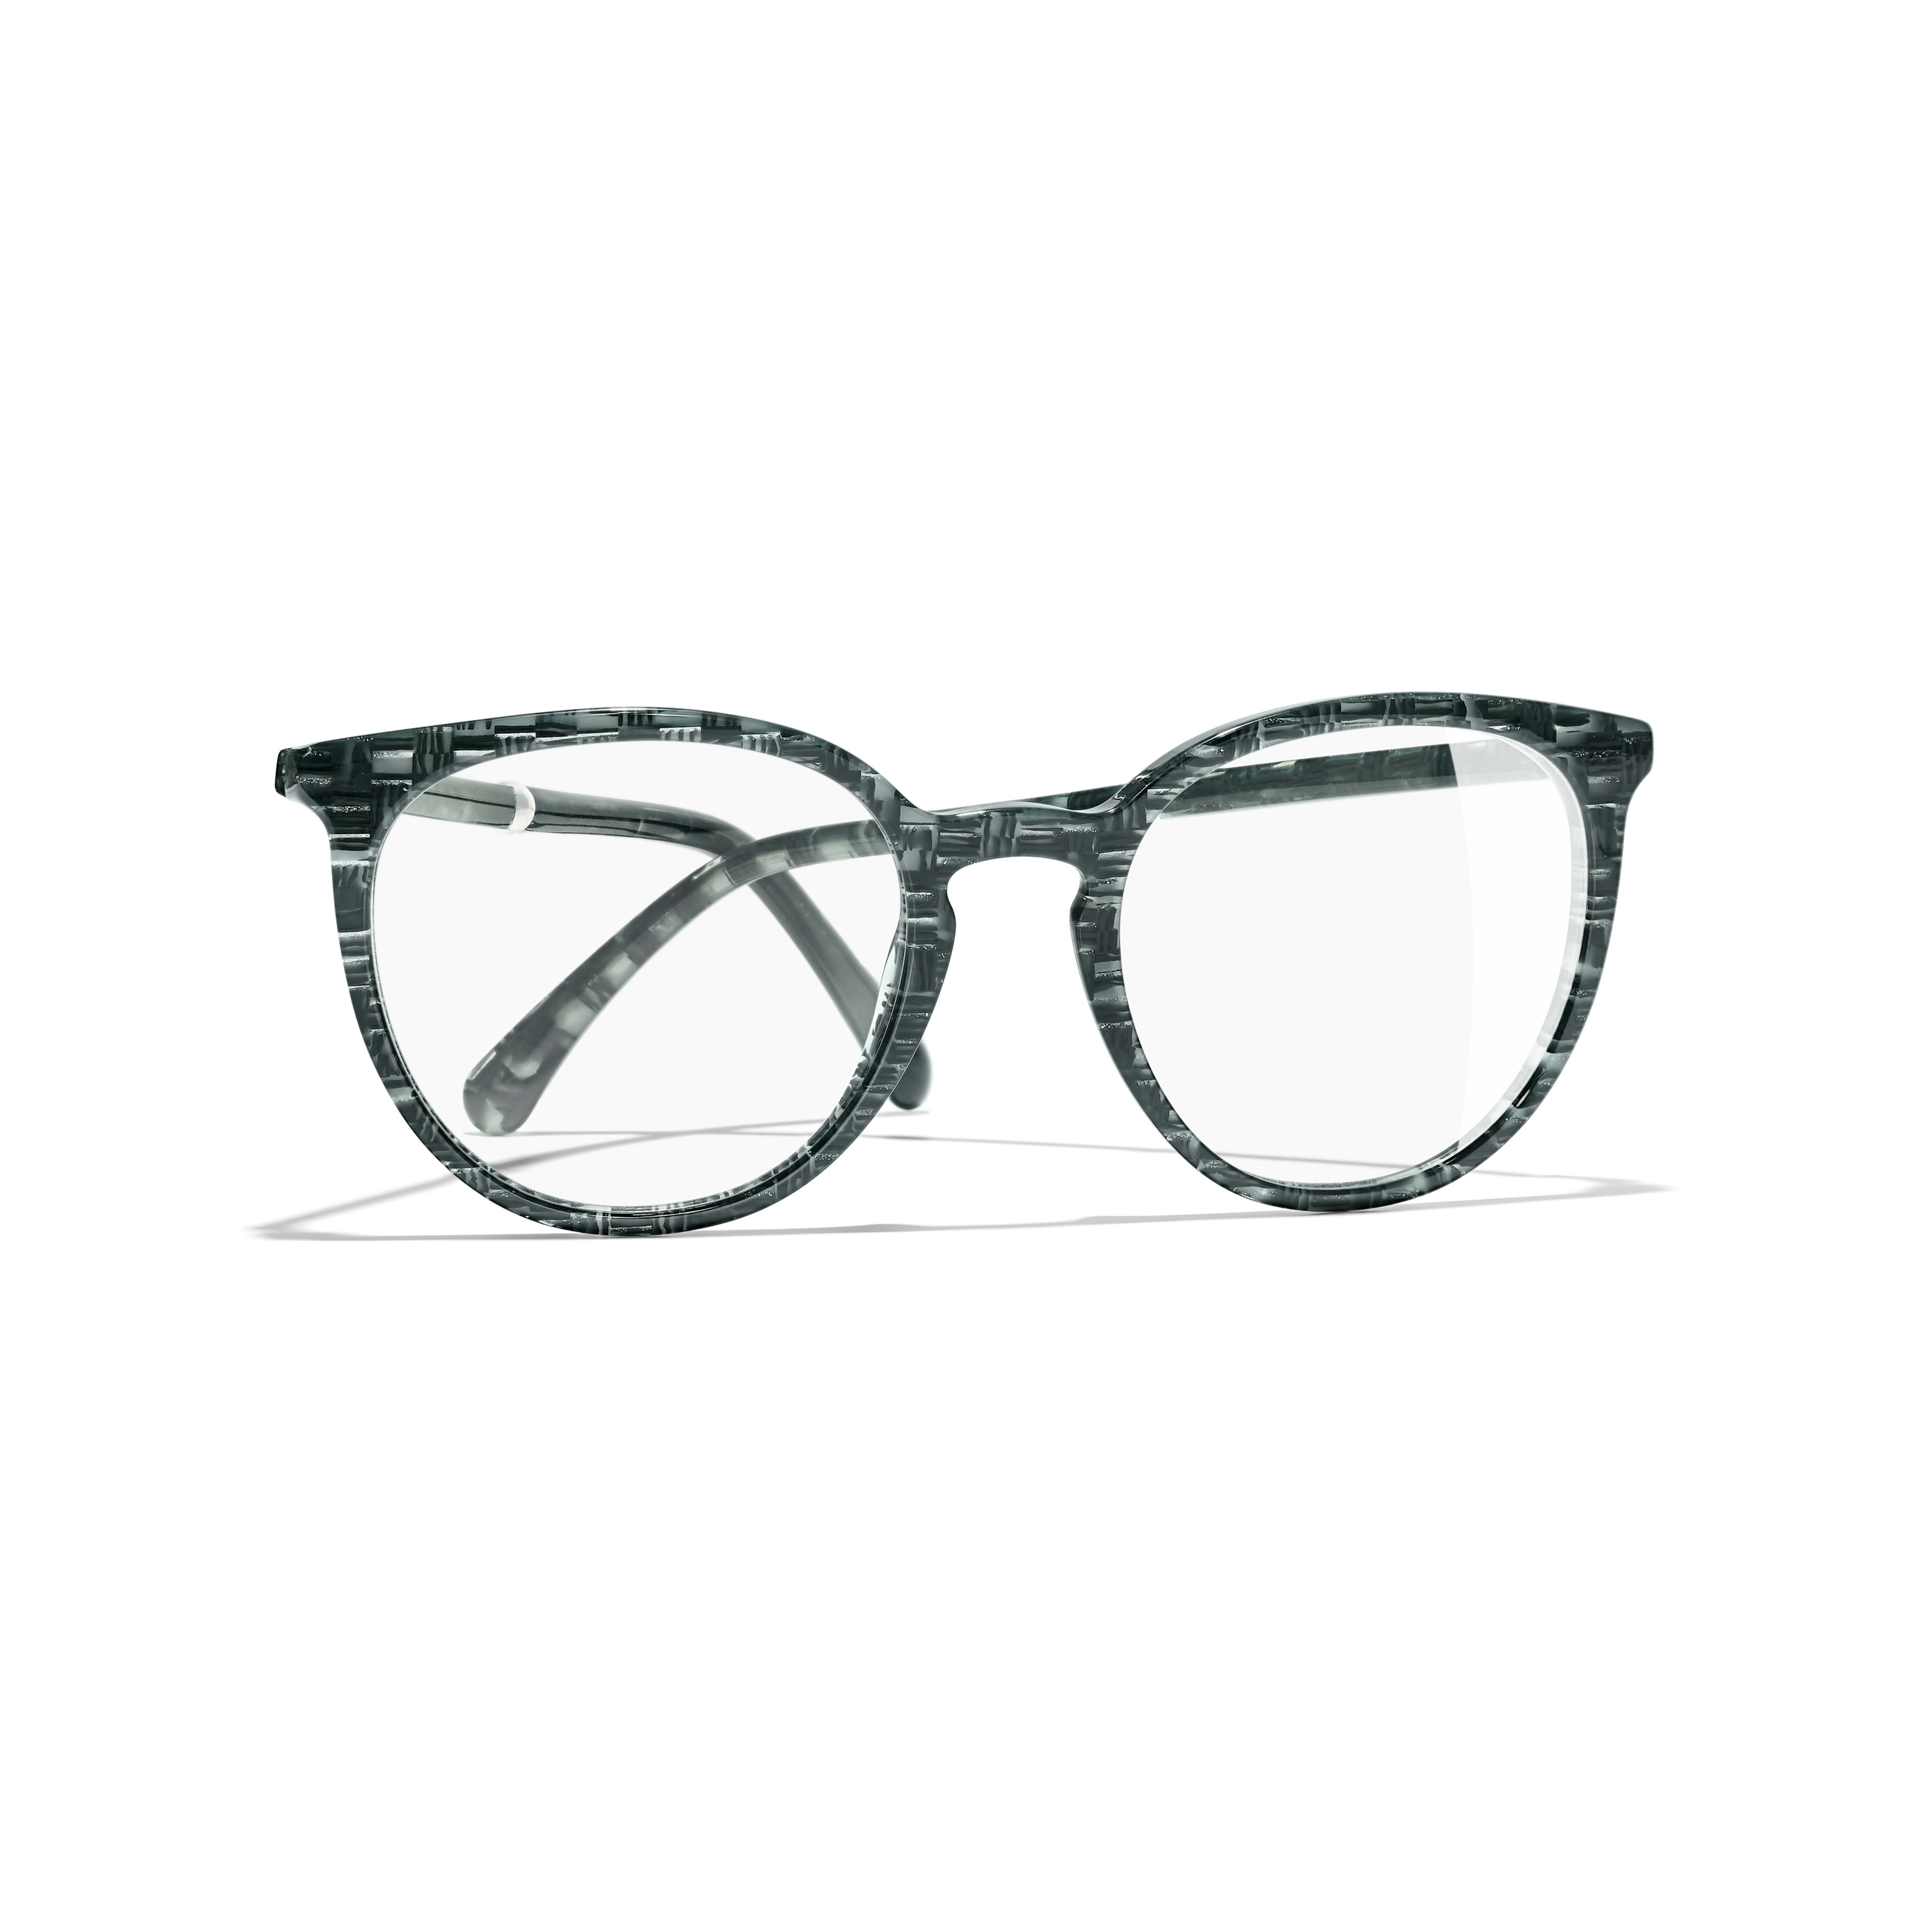 Pantos Eyeglasses - Glittered Green - Acetate & Imitation Pearls - Extra view - see standard sized version